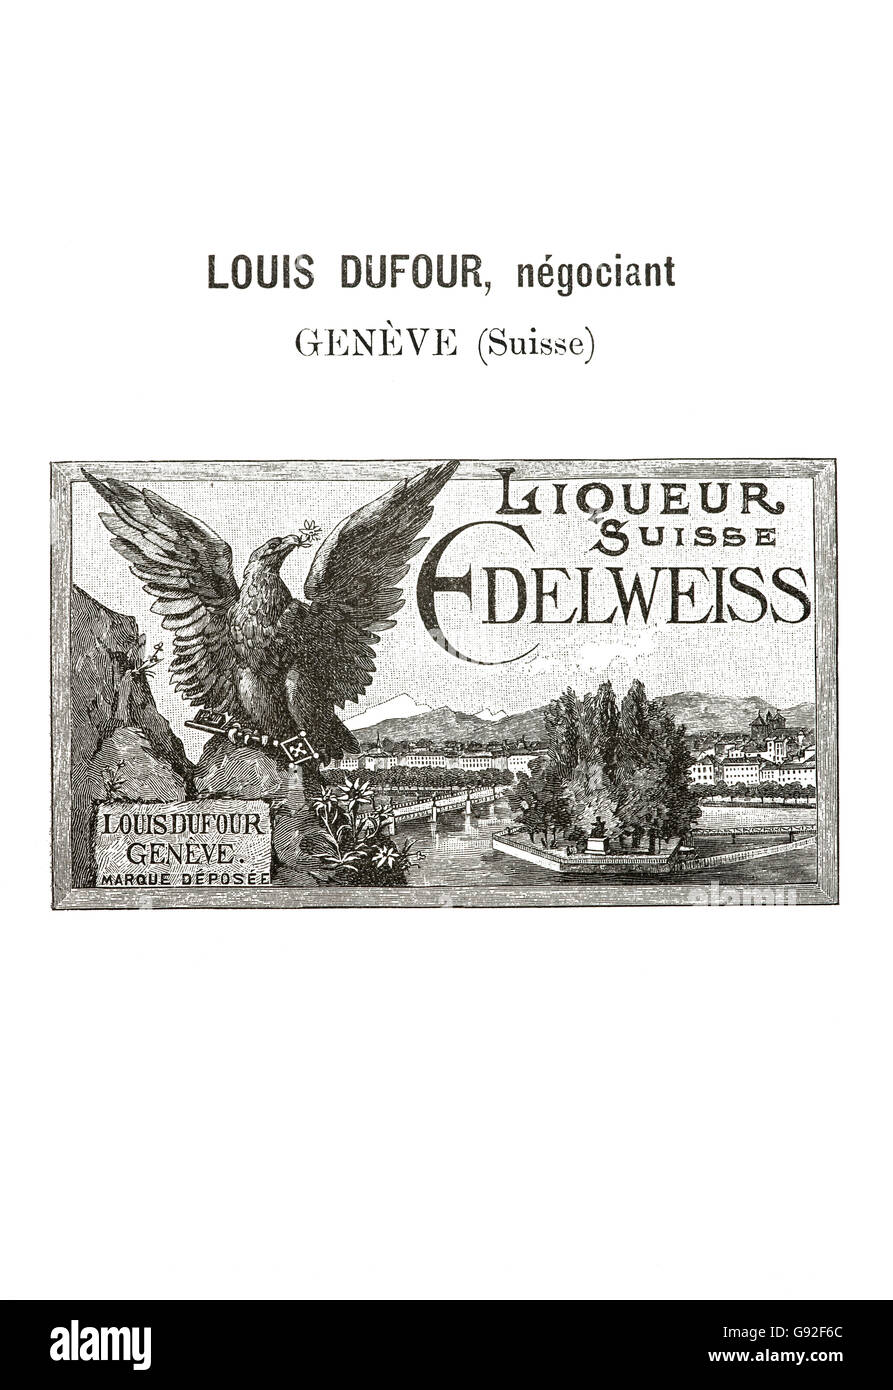 Historical trademark for Swiss Edelweiss liqueur marketed by the Geneva retailer Louis Dufour from 1894, Switzerland - Stock Image